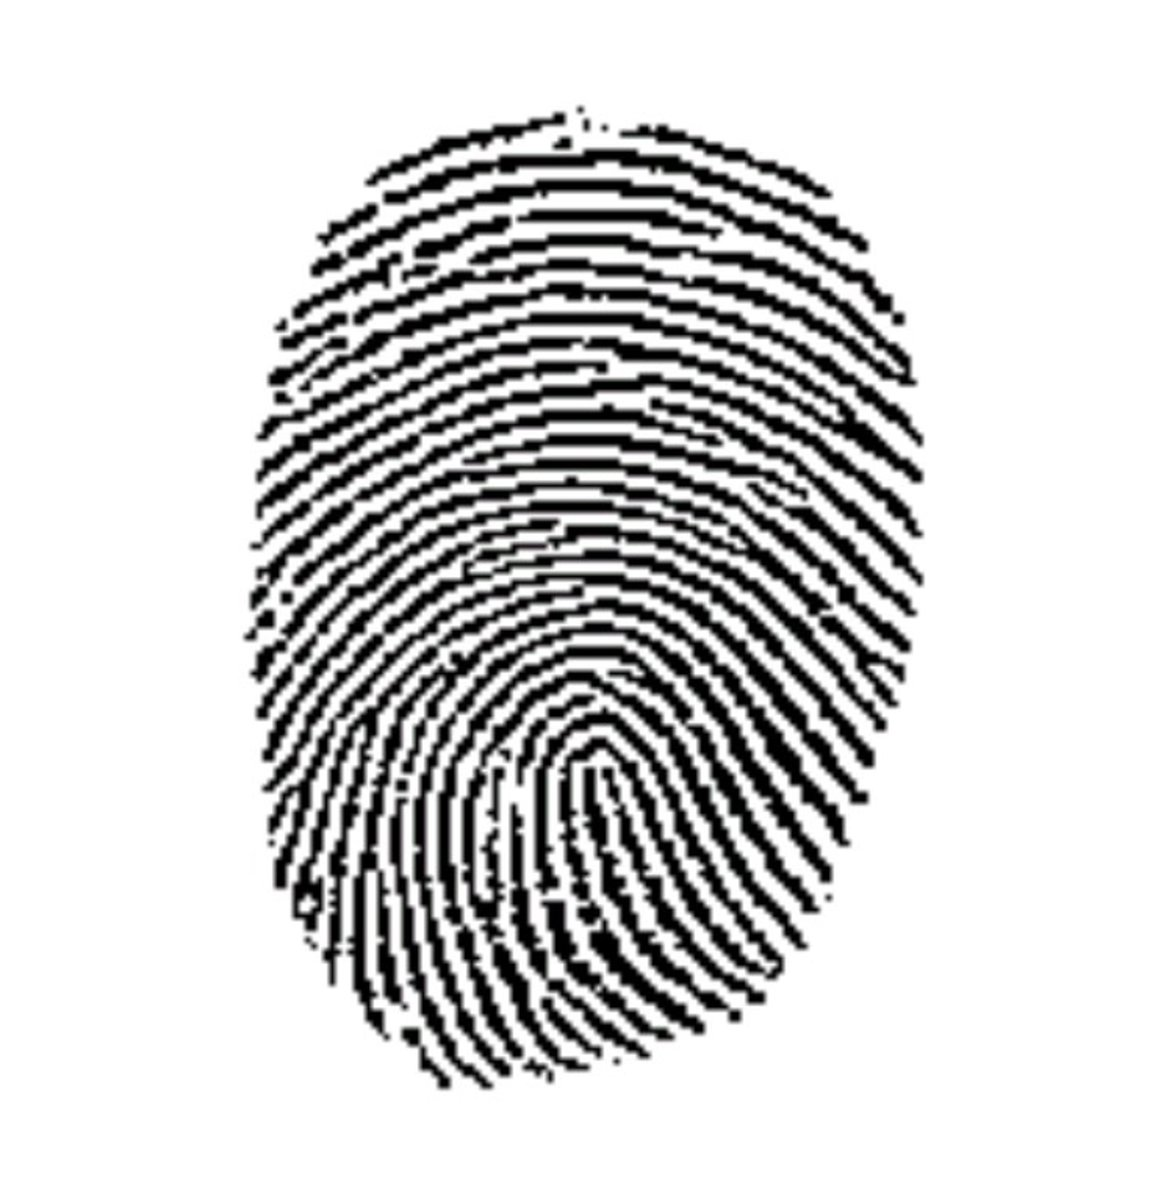 What Your Fingerprints Say About You: The Link Between